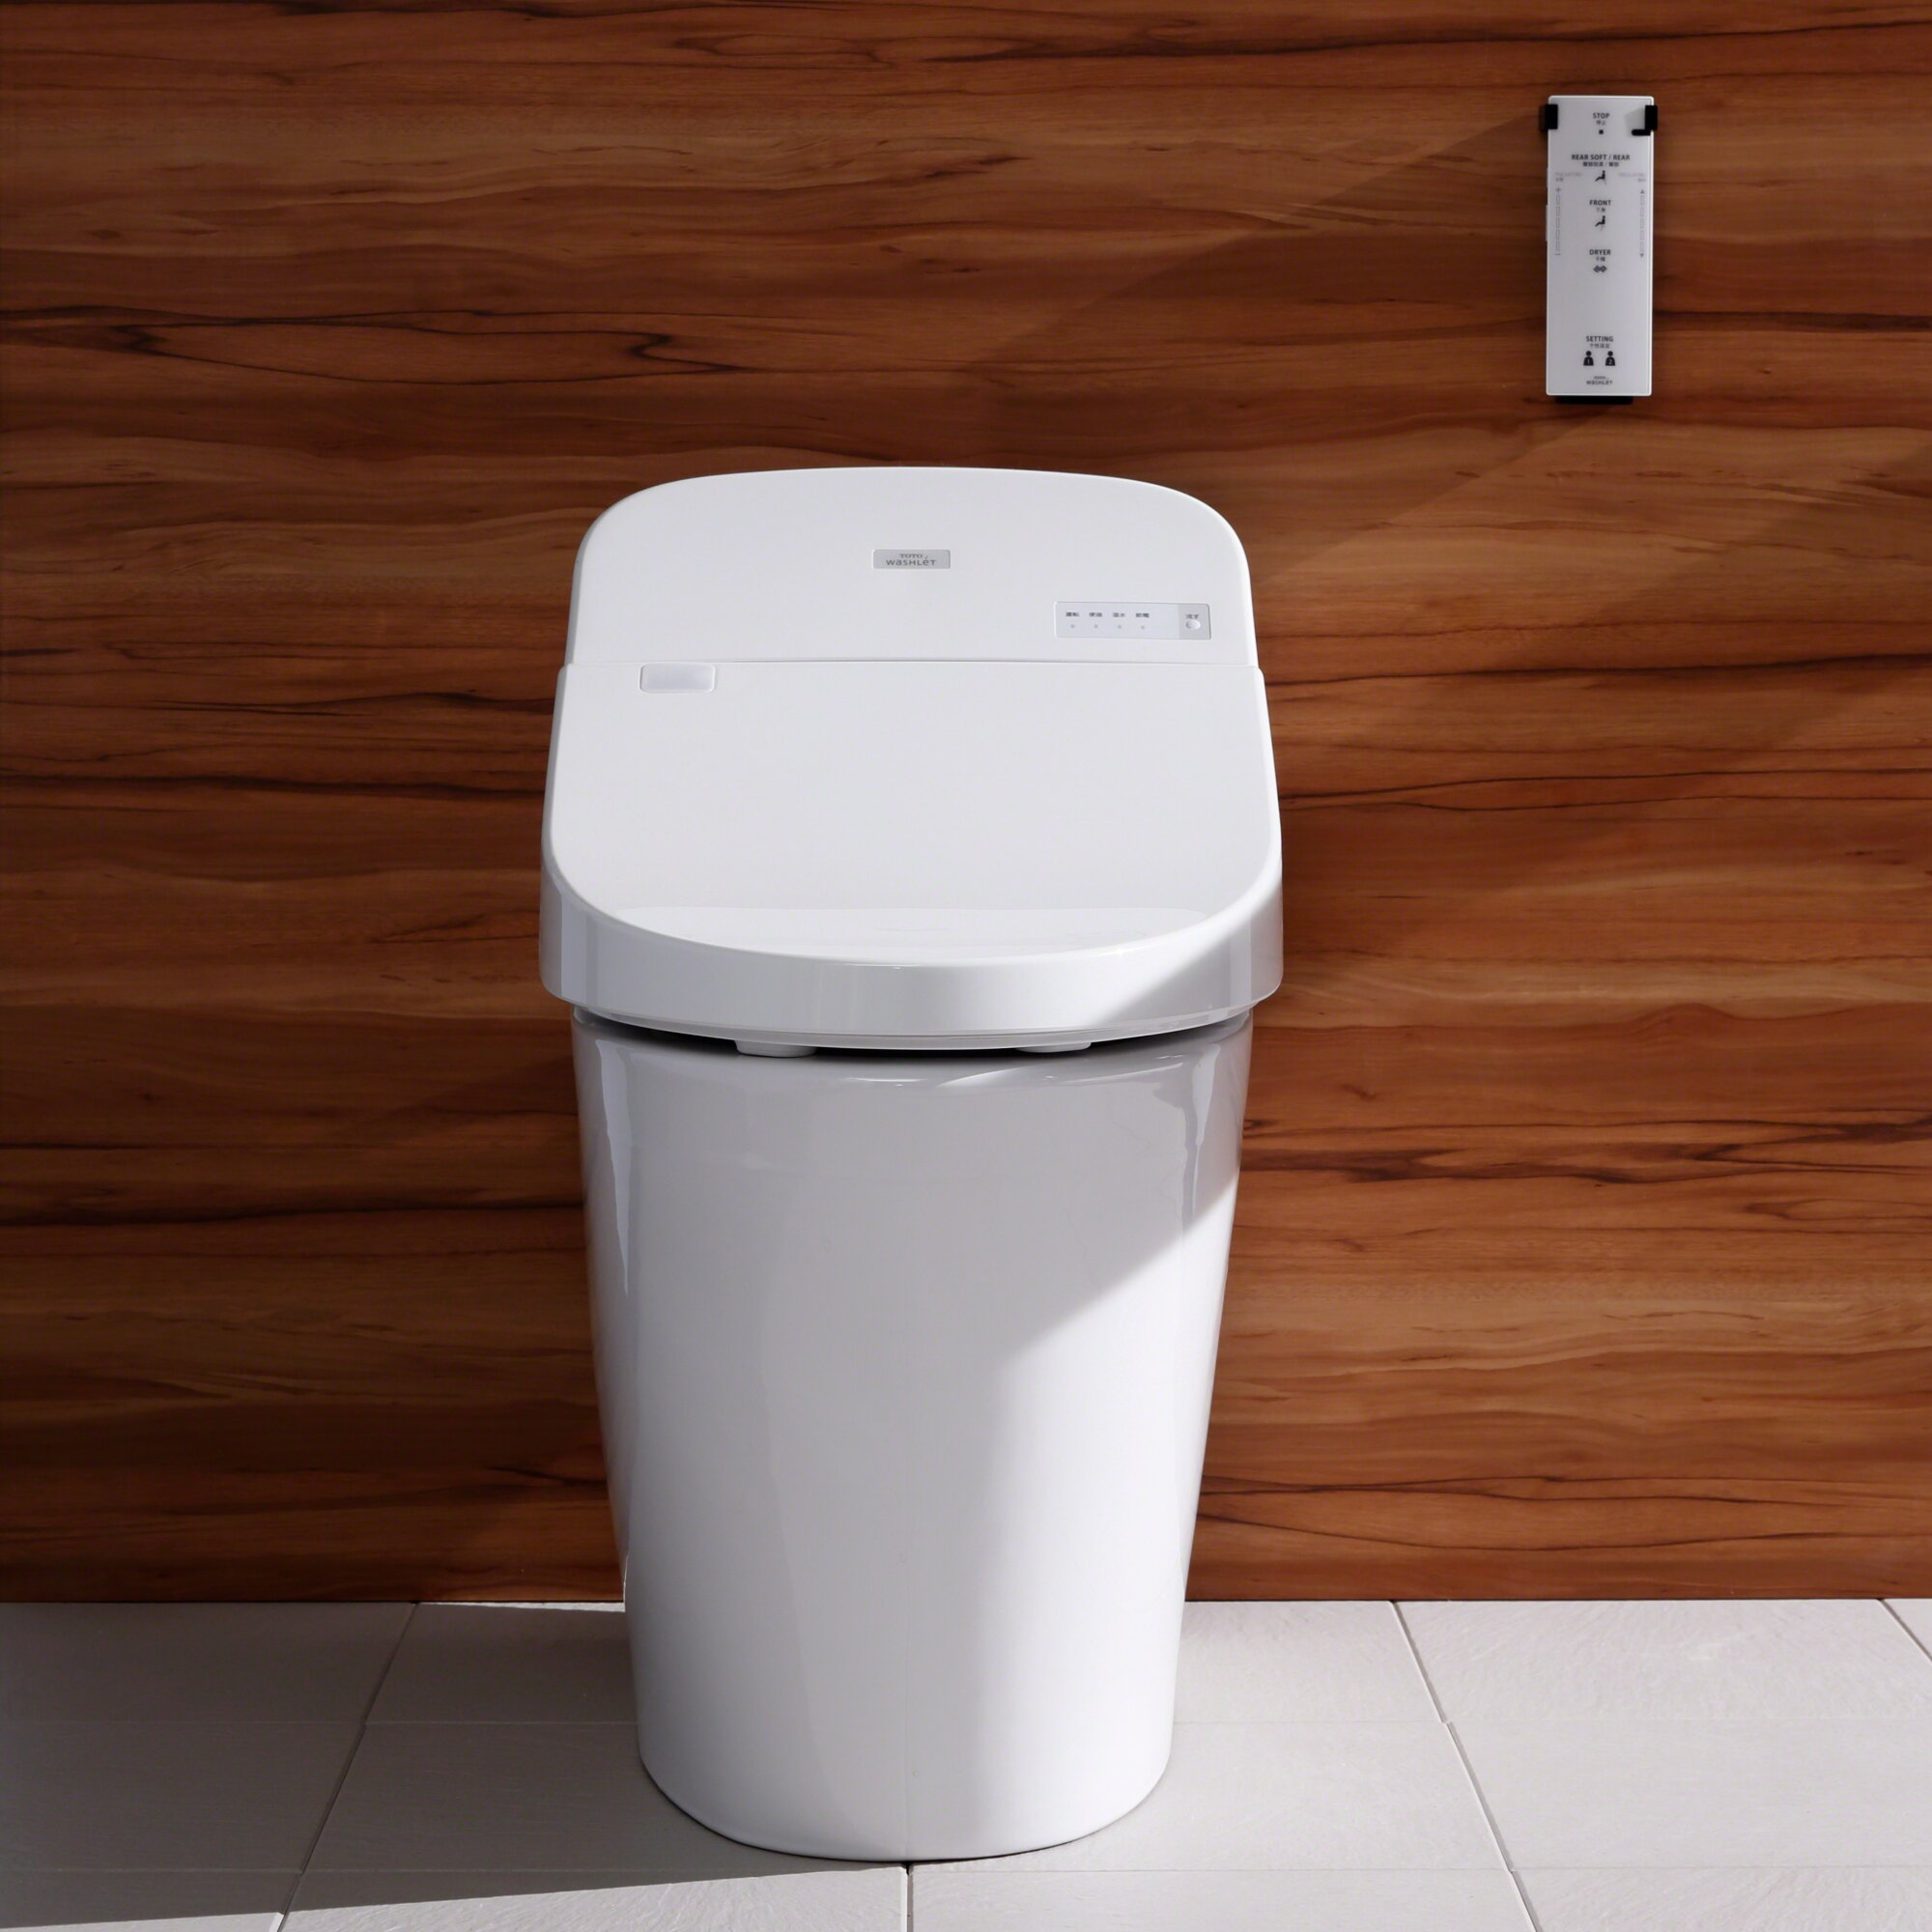 Terrific Dual Flush Elongated Bidet Toilet And Premist Seat Included Pabps2019 Chair Design Images Pabps2019Com